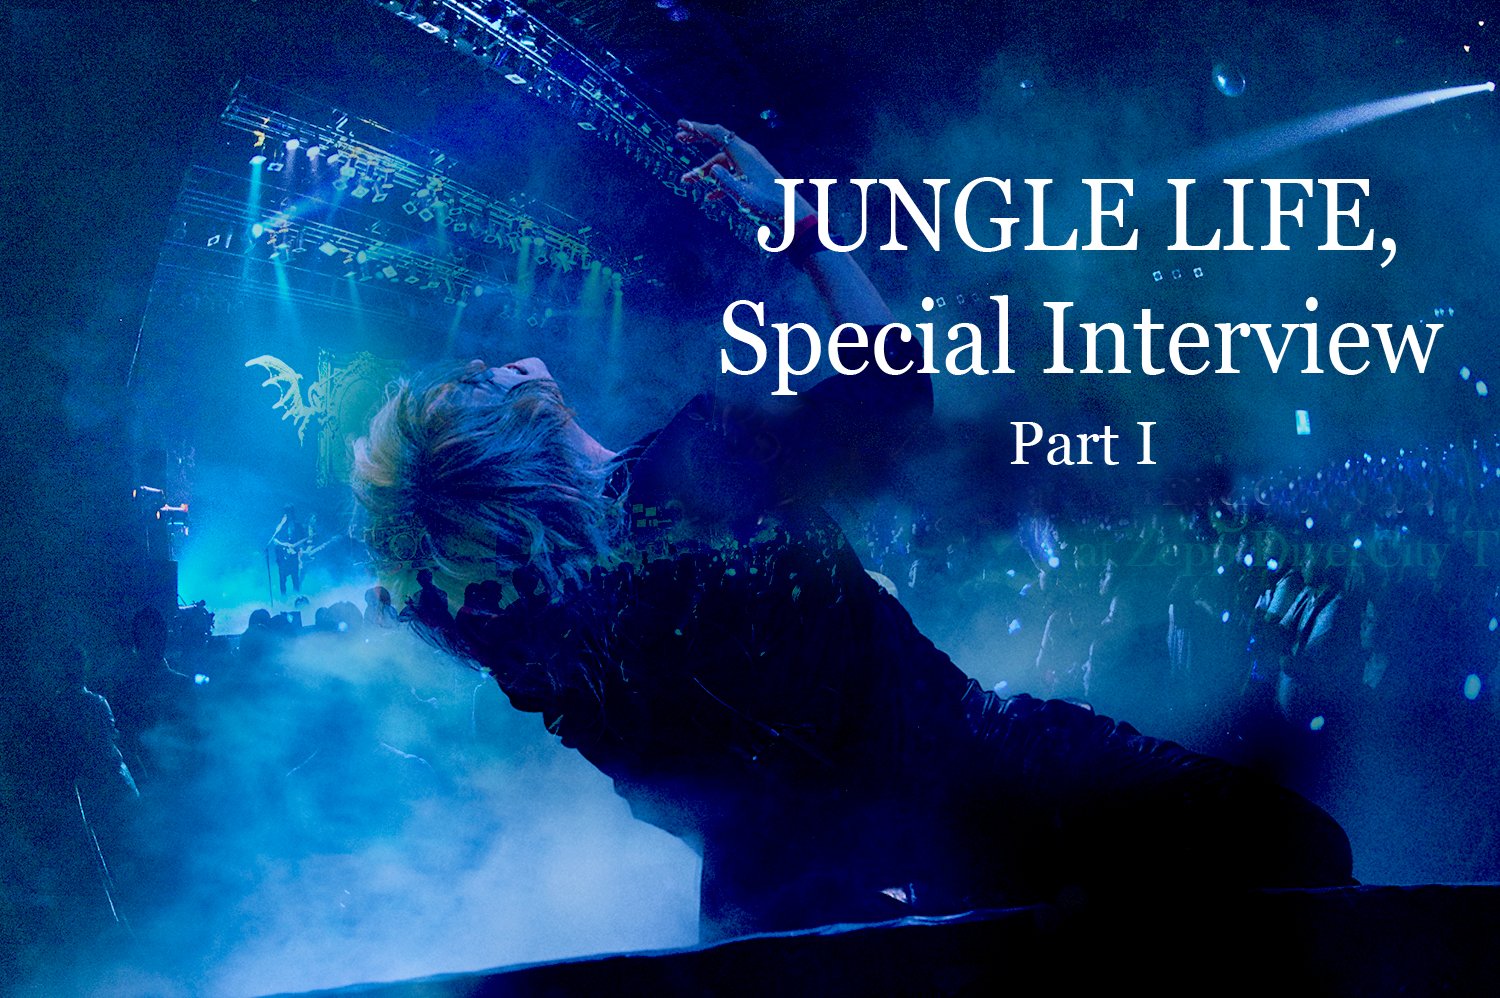 JUNGLE LIFE, Exclusive Interview Part I